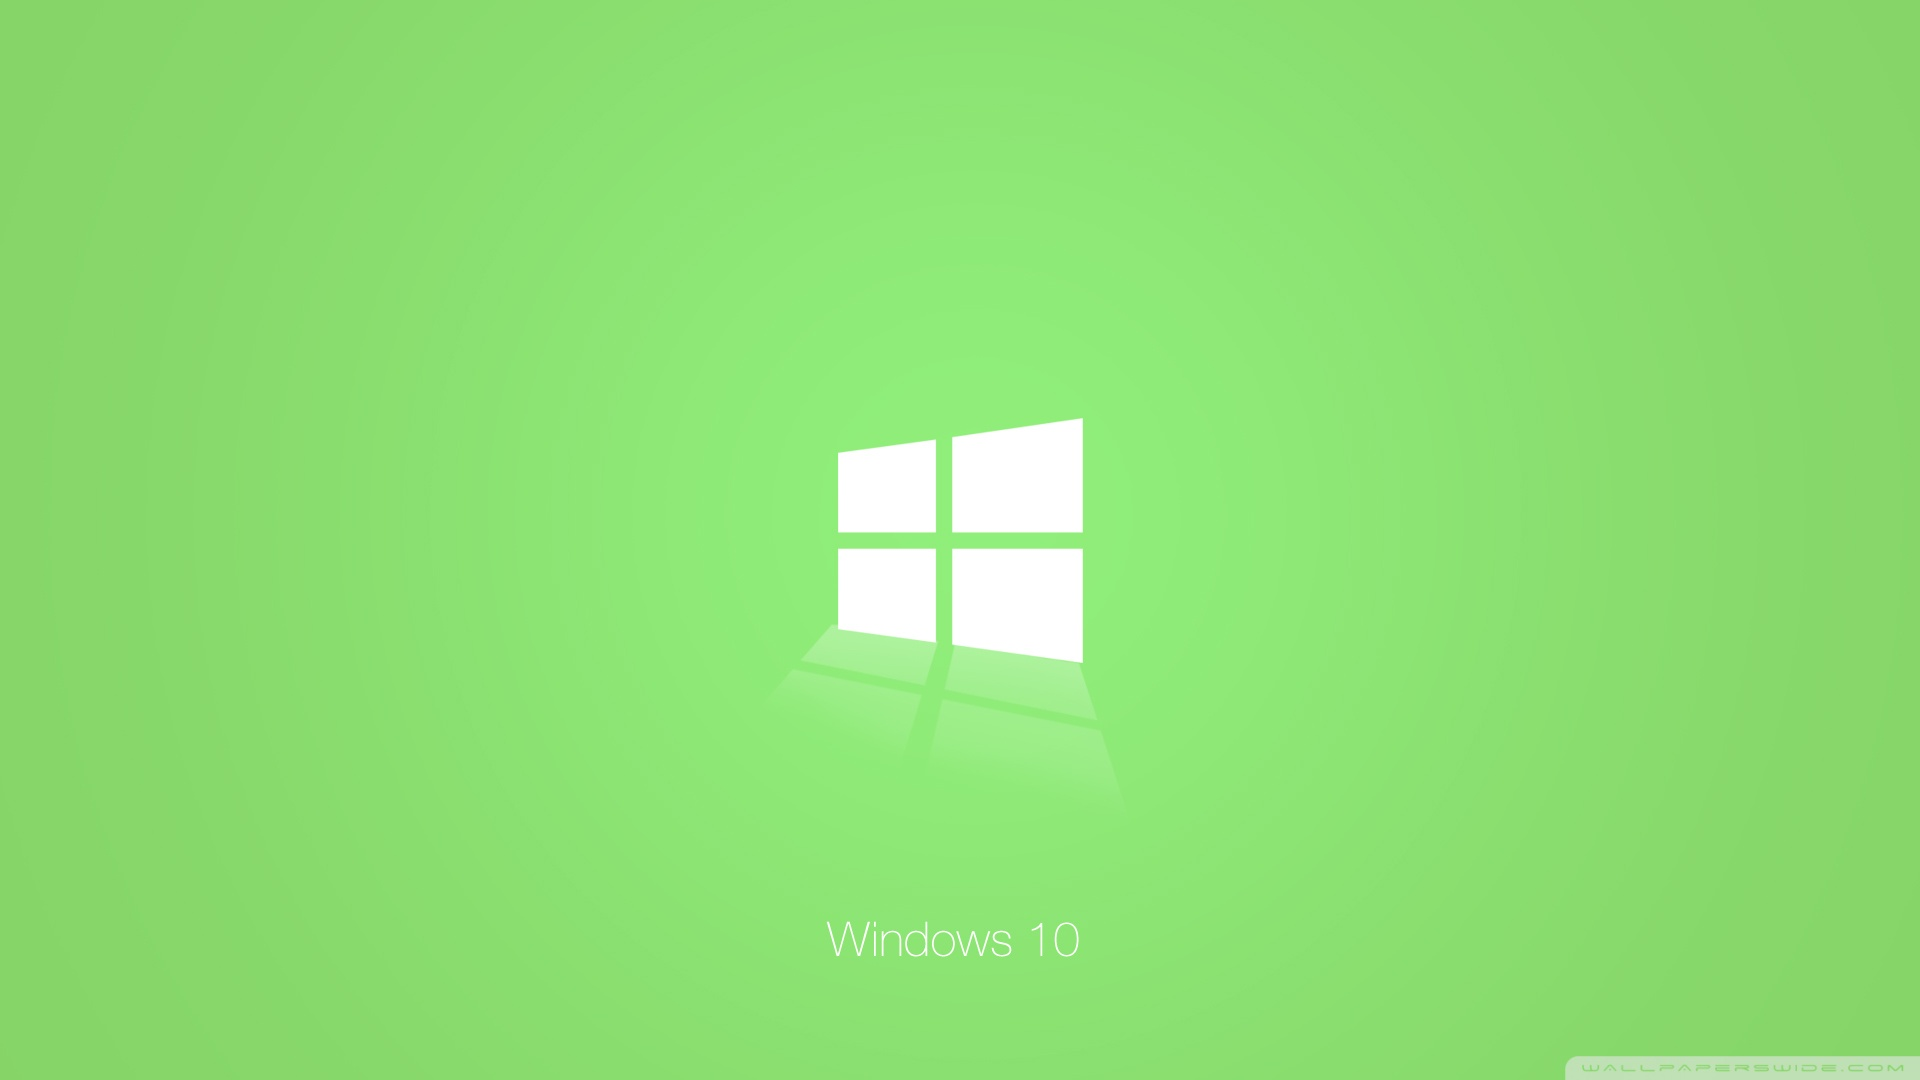 Windows 10 Wallpapers 1920x1080